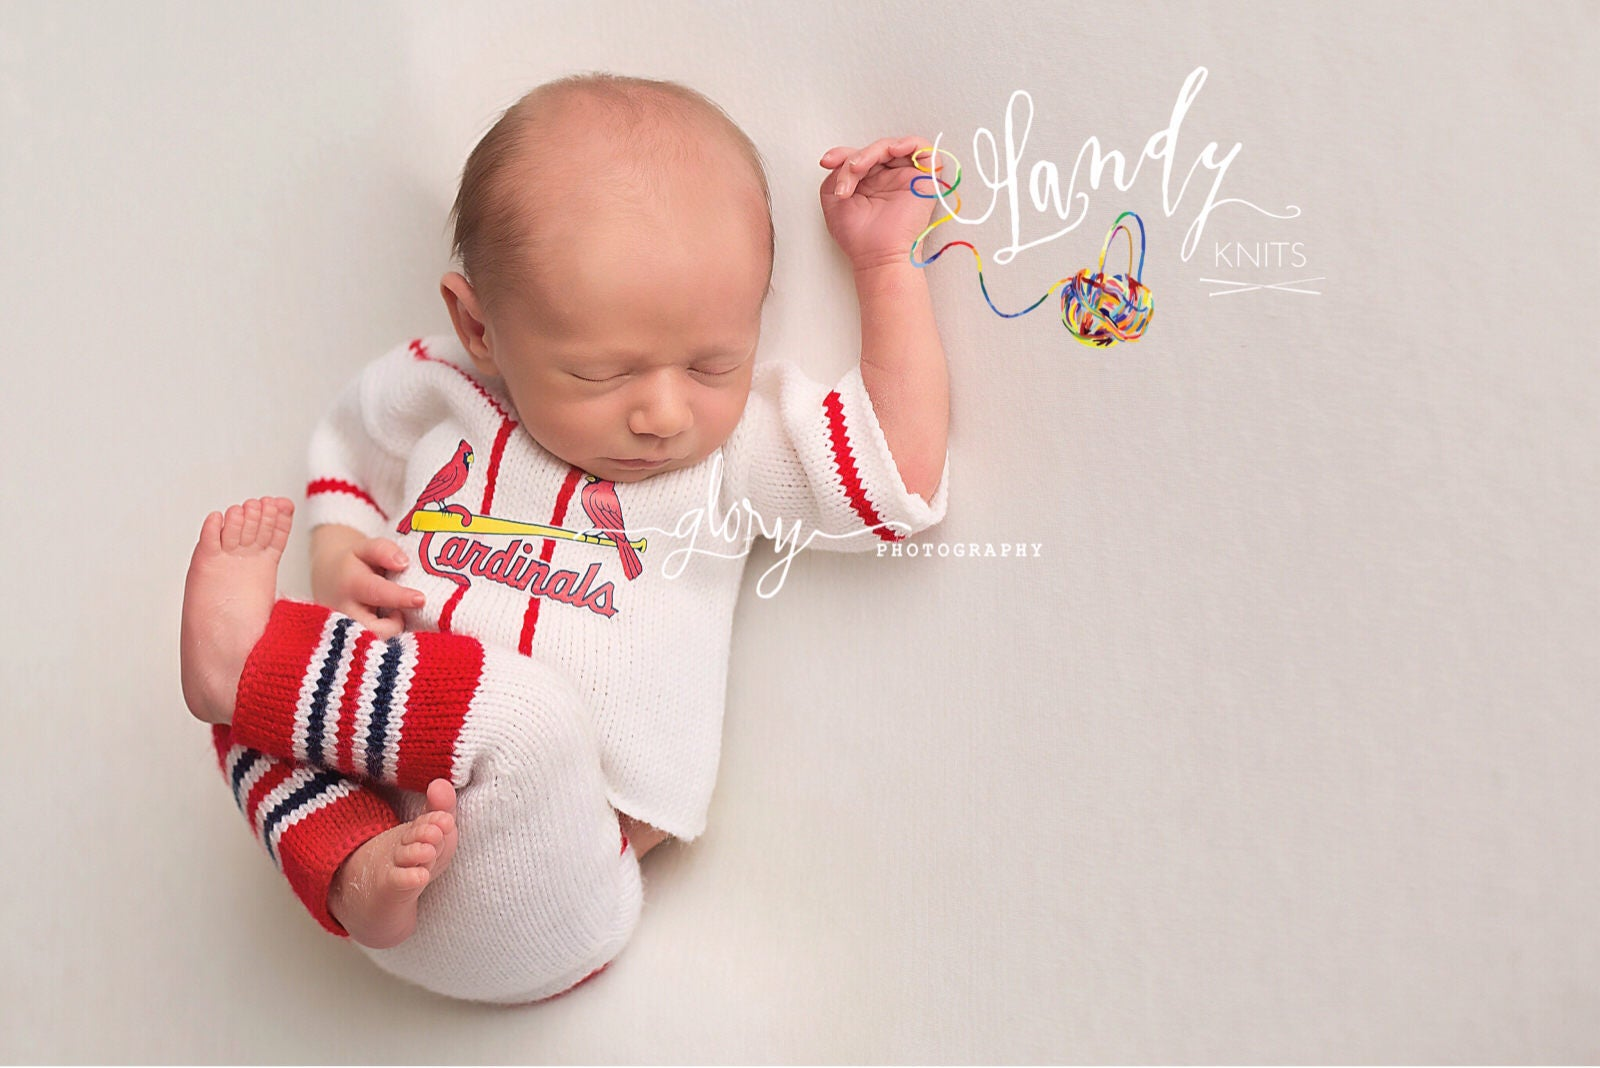 Baby baseball outfit baby boy photo outfit custom baby gift baby baseball outfit baby boy photo outfit custom baby gift baseball baby clothes newborn photo prop baseball baby shower gift negle Image collections